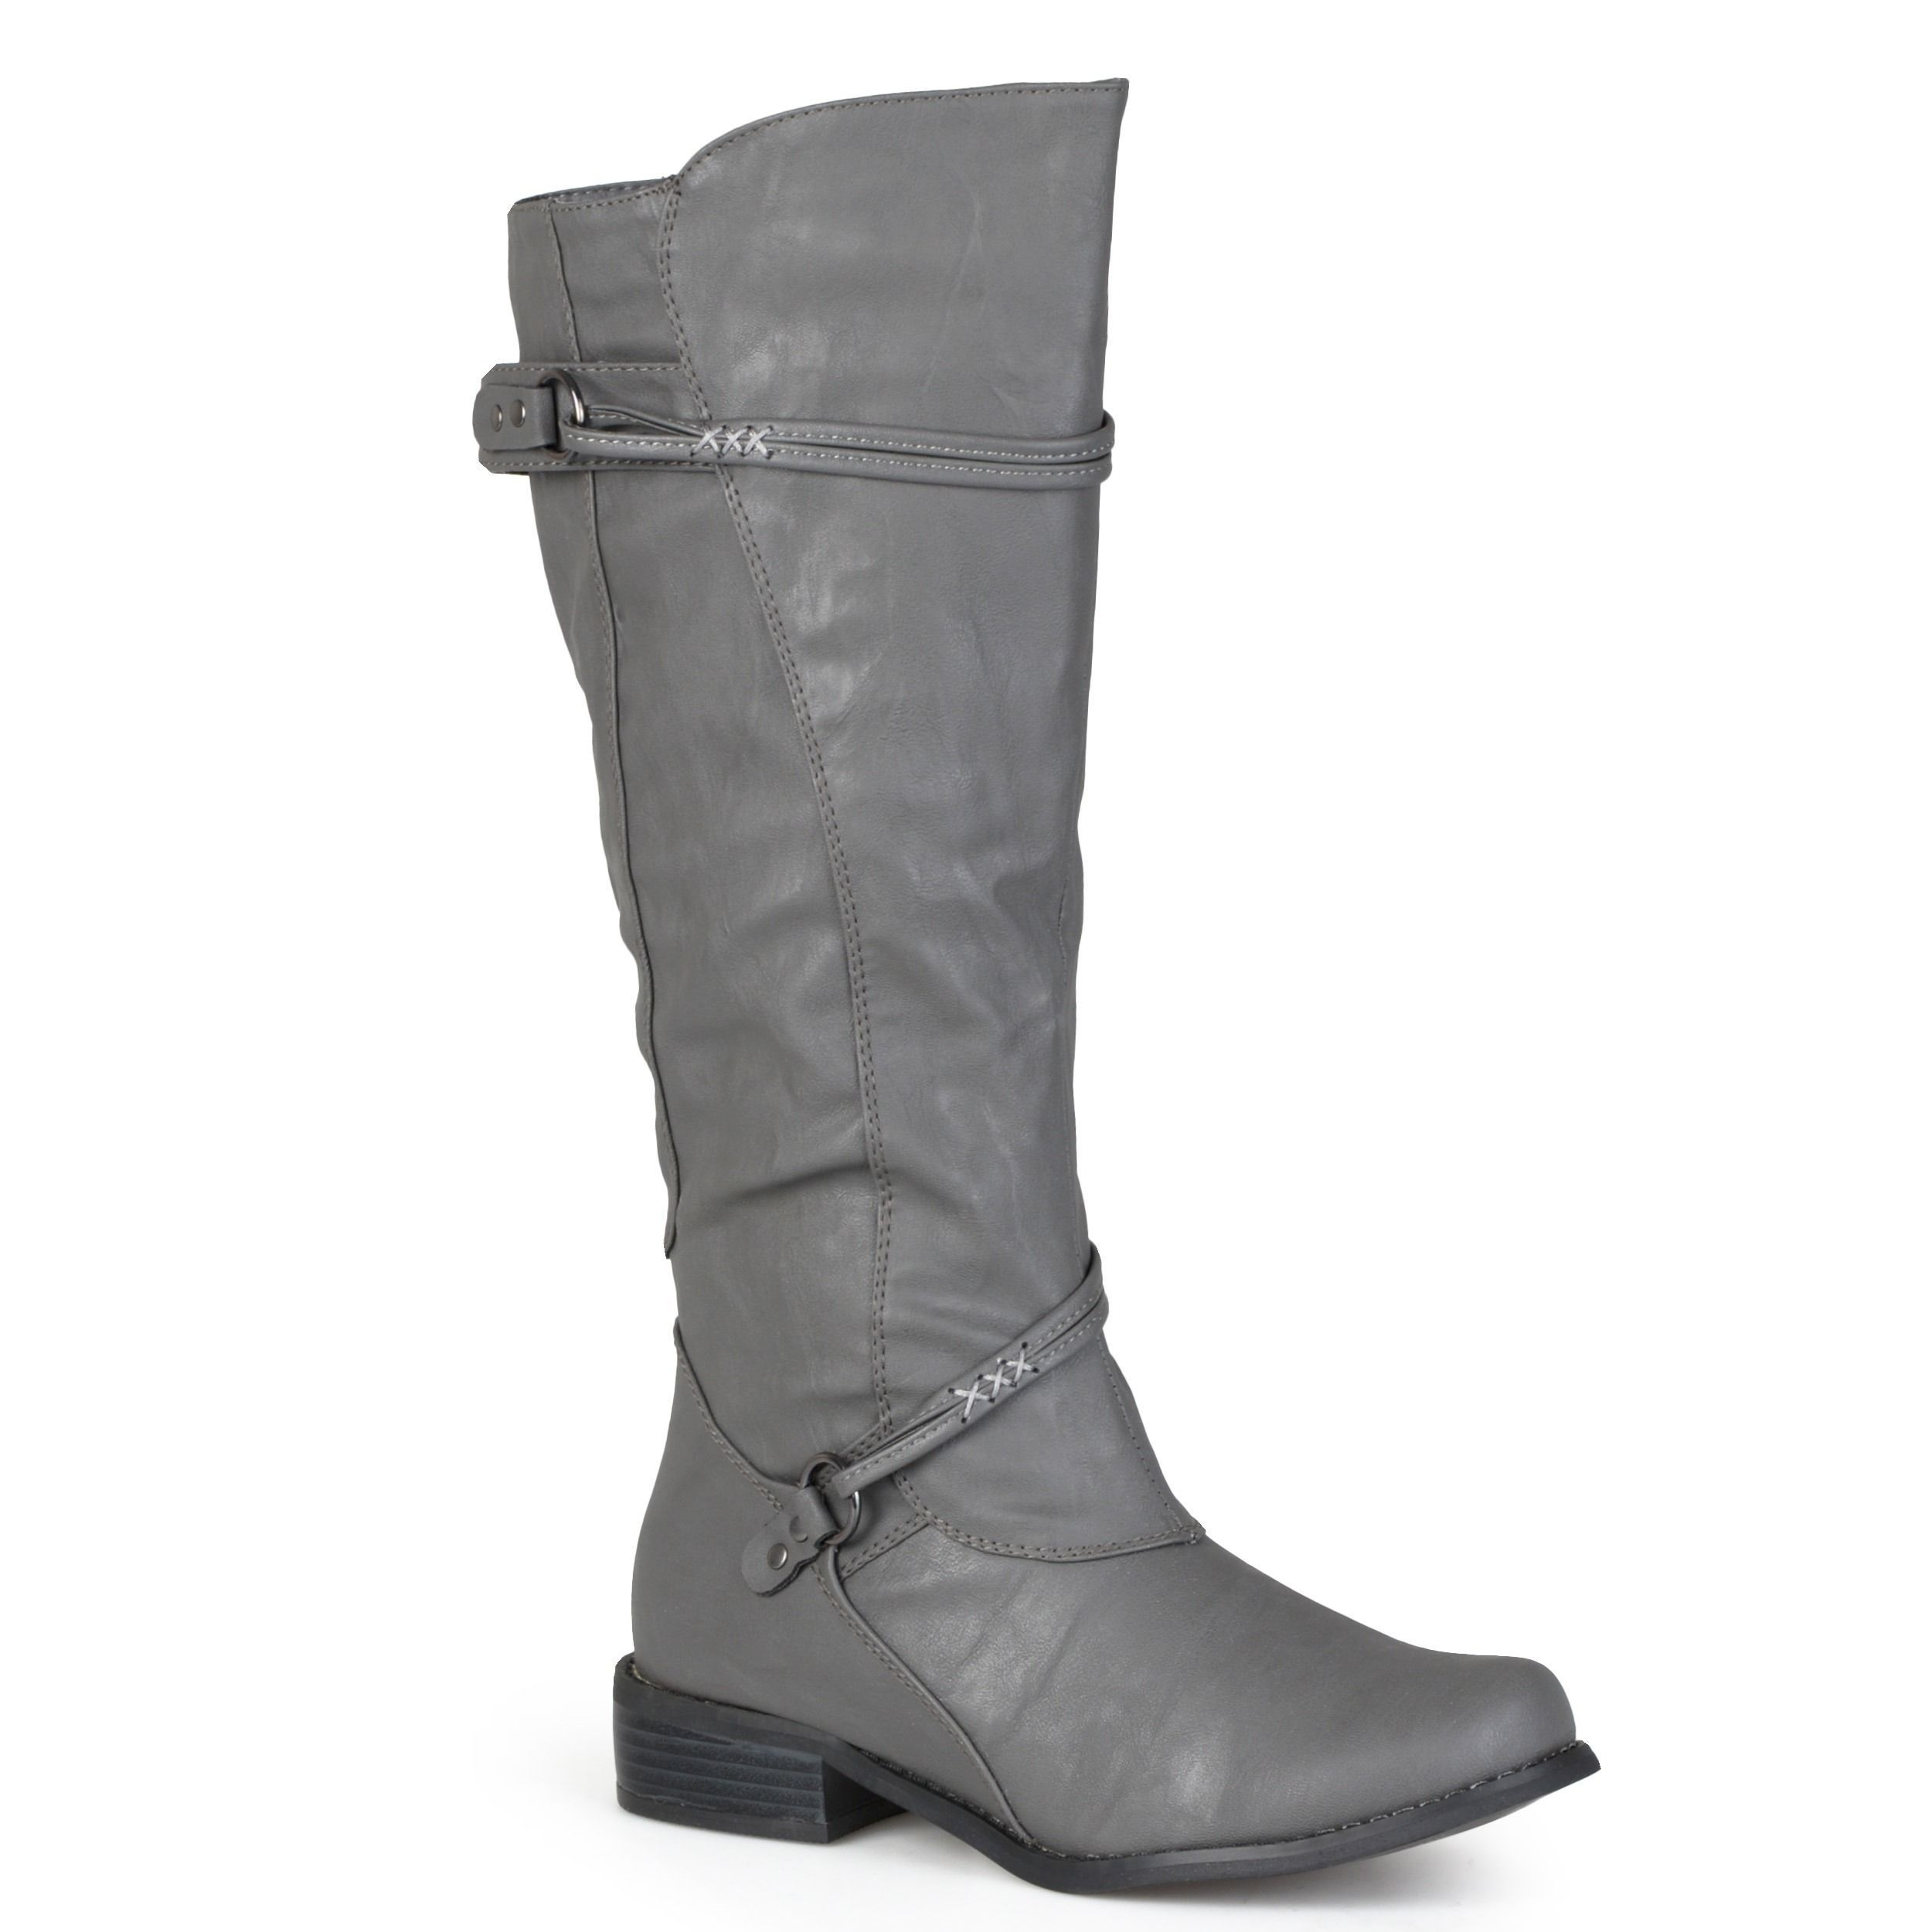 These Stylish Women S Tall Boots Are Ideal To Wear To Any Occasion